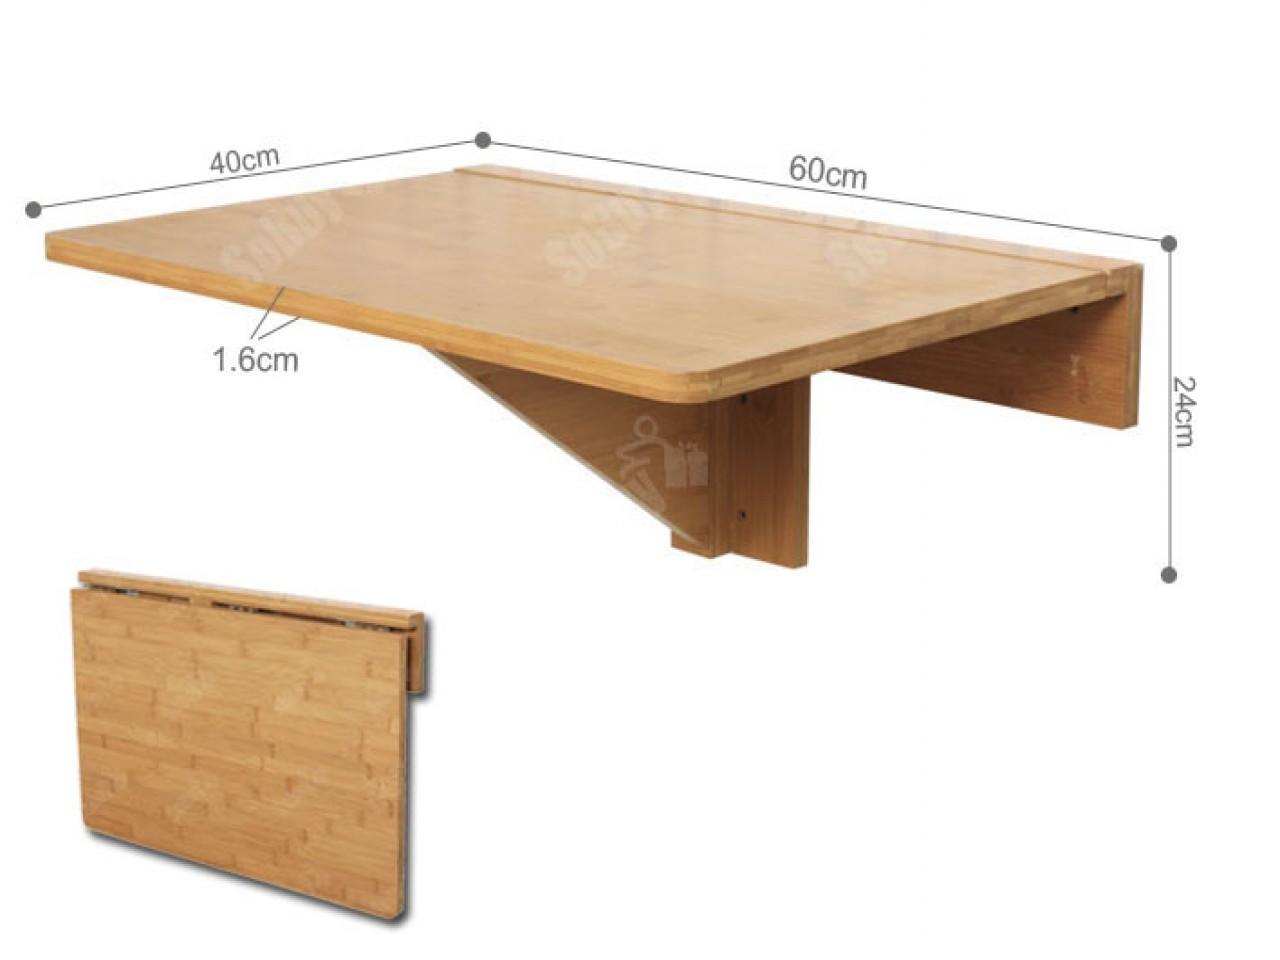 Folding Wall Table Plans Fold Down